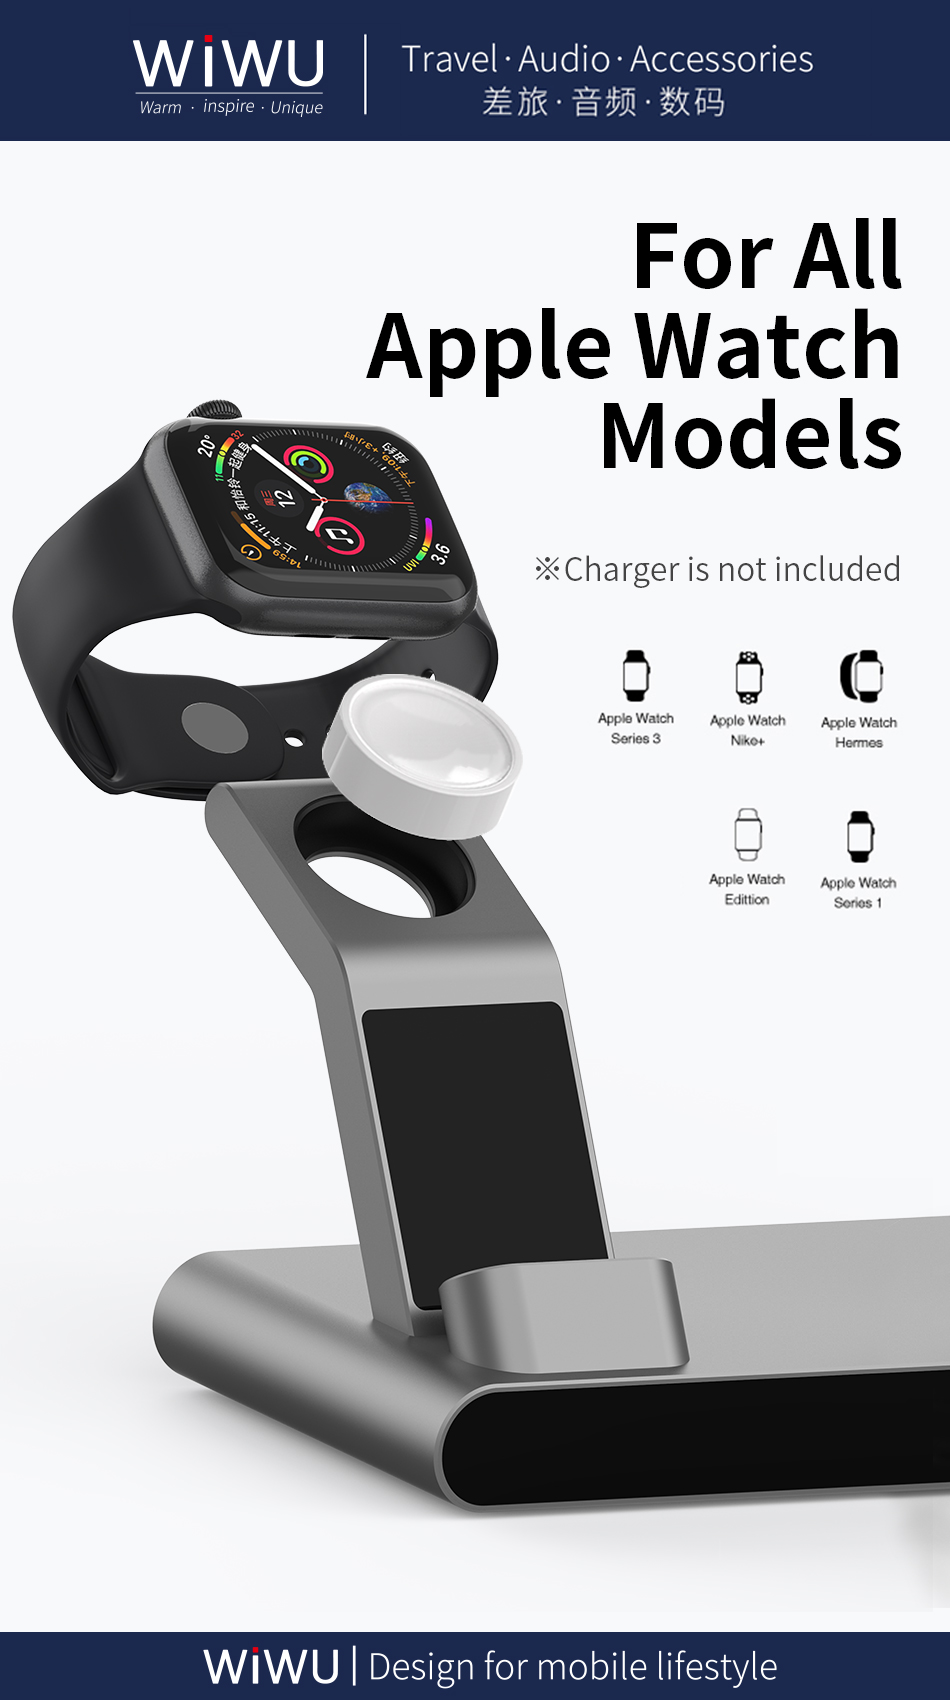 WiWU MF500 3 in 1 18W Fast Charging Stand Wireless Charger